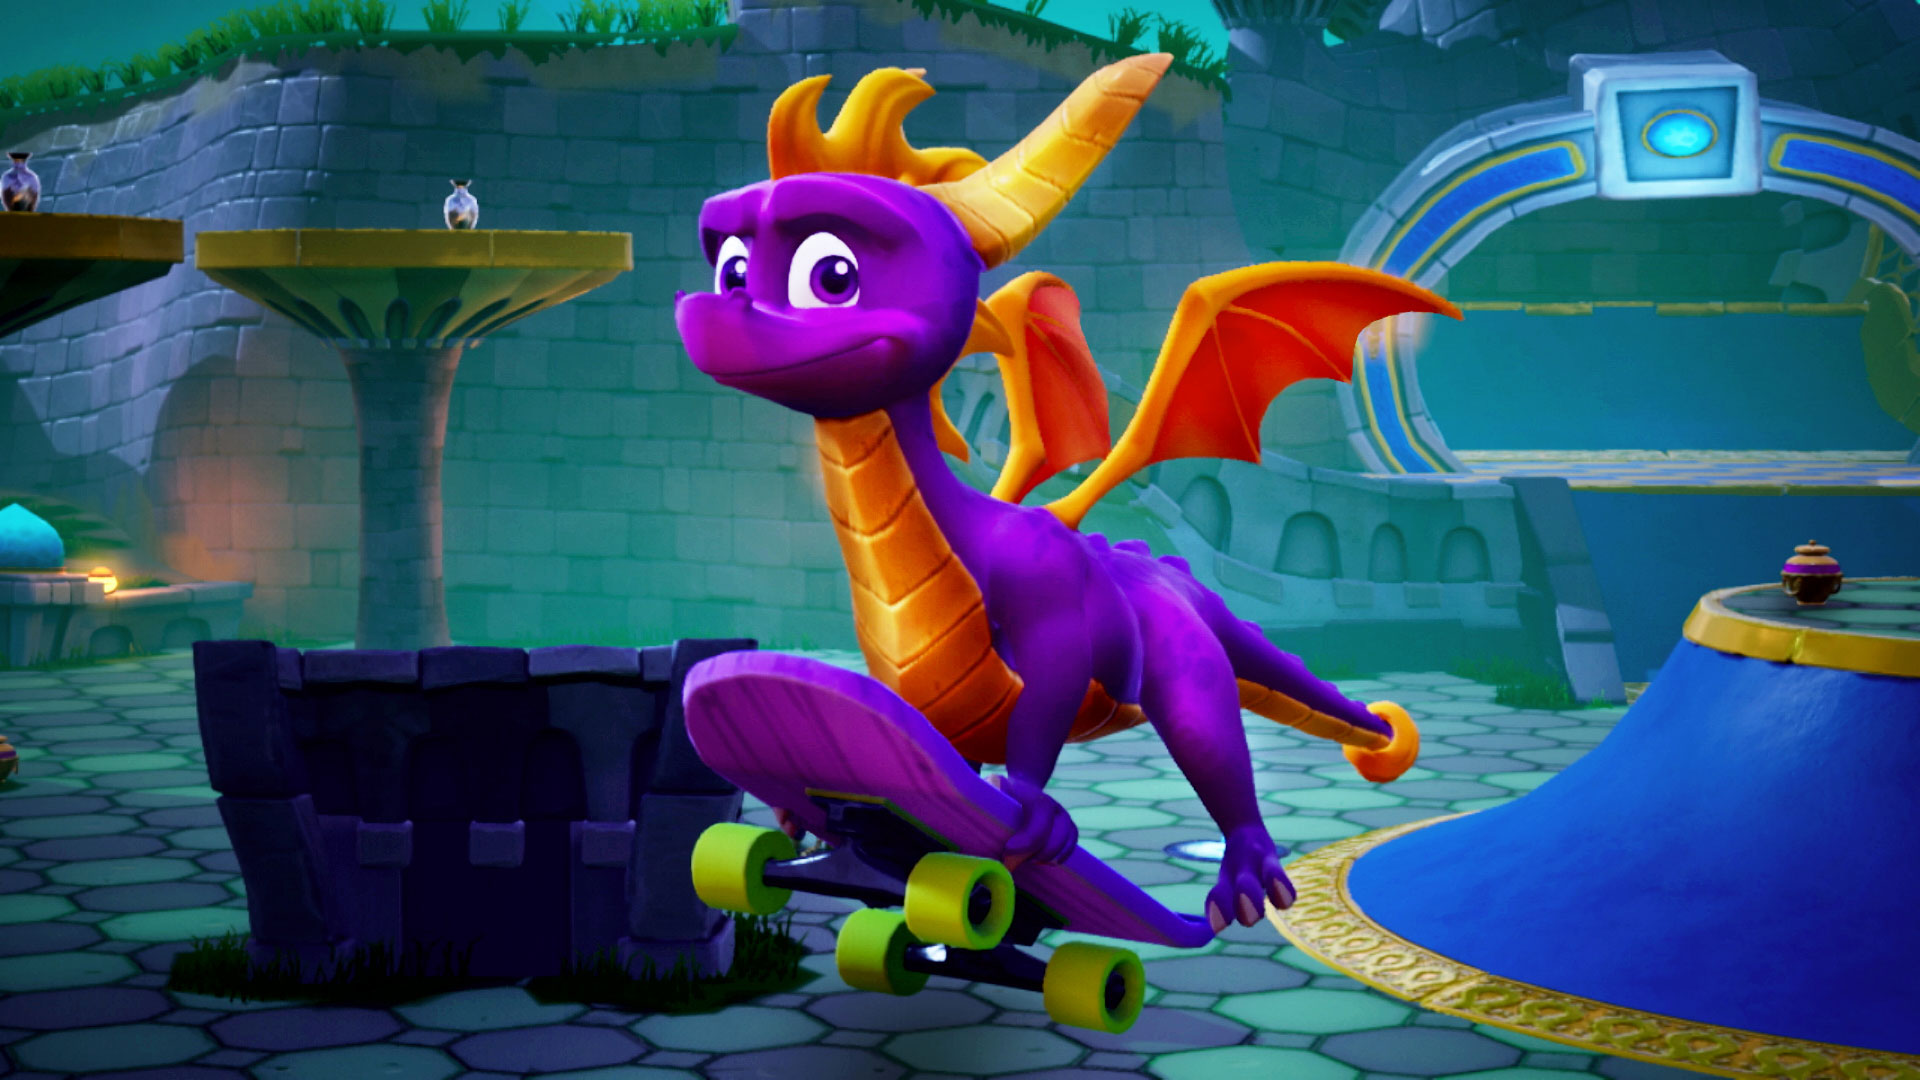 Spyro-Reignited-Trilogy_Switch_Enchanted-Towers-Skatepark_FINAL.jpg